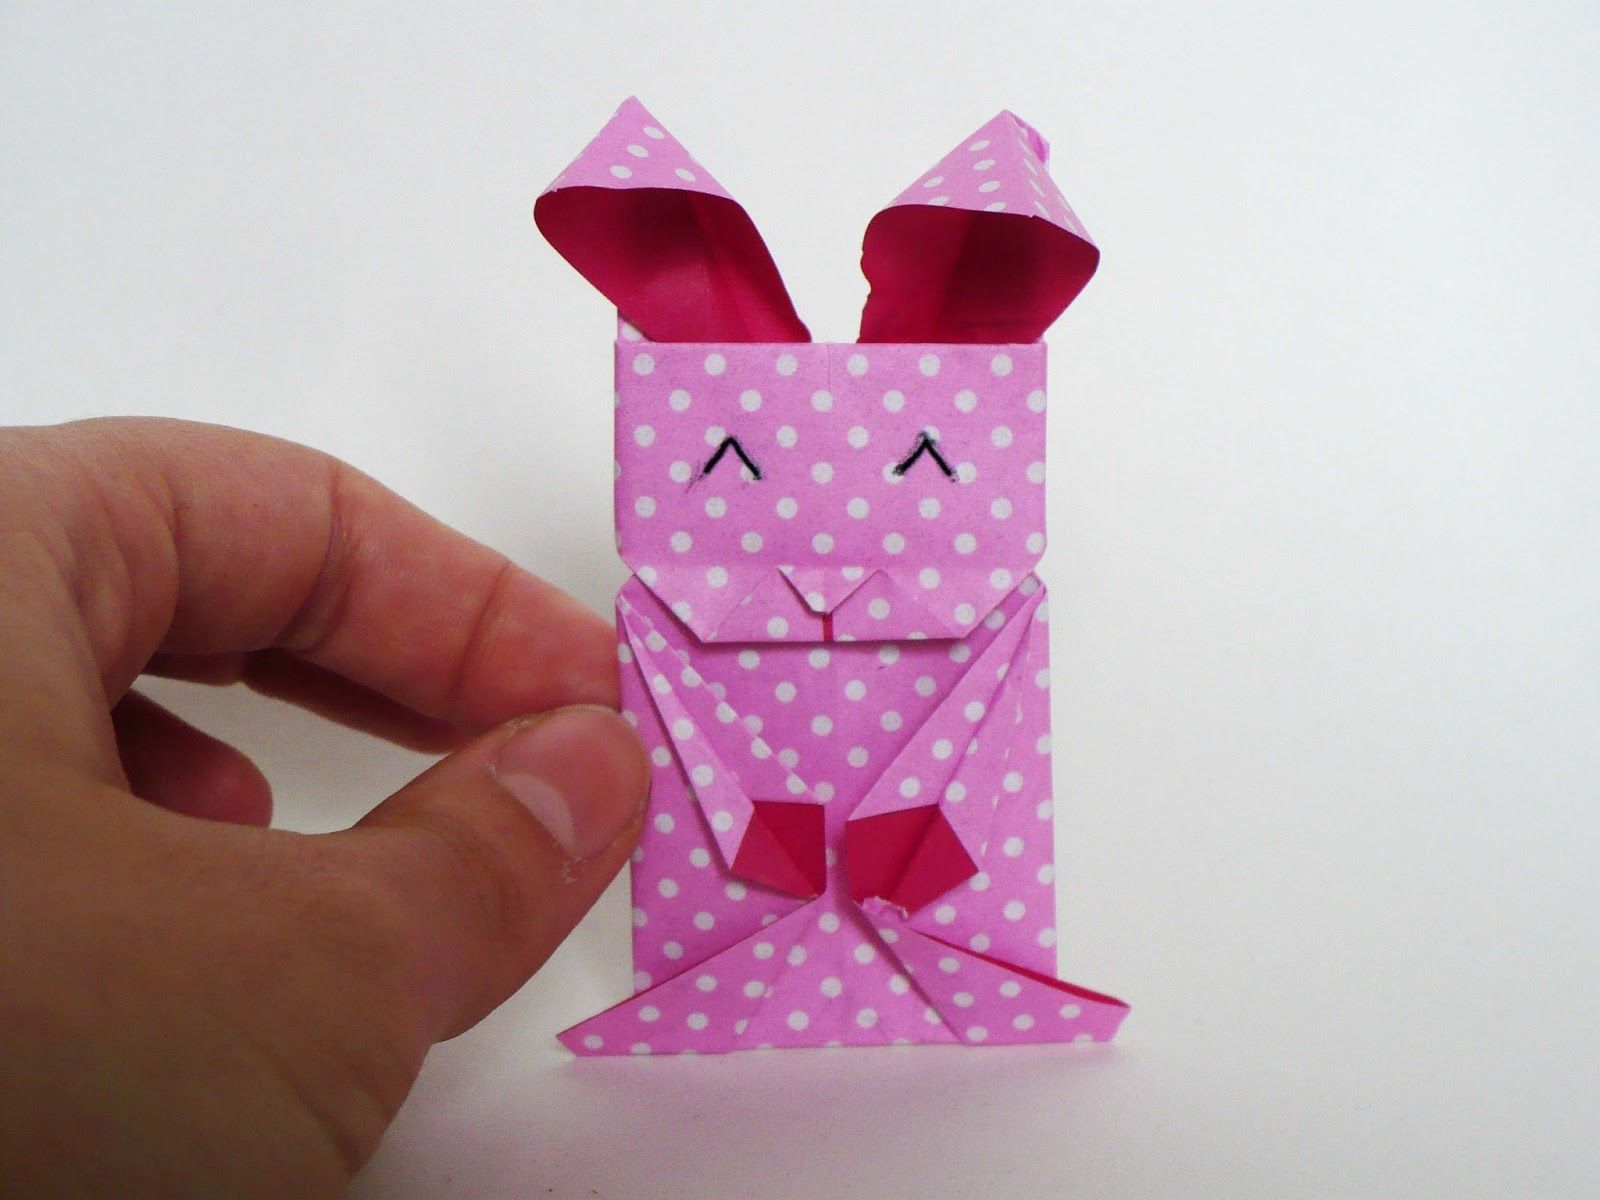 8 cute and quite easy origami rabbits tutorials for easter ... - photo#40